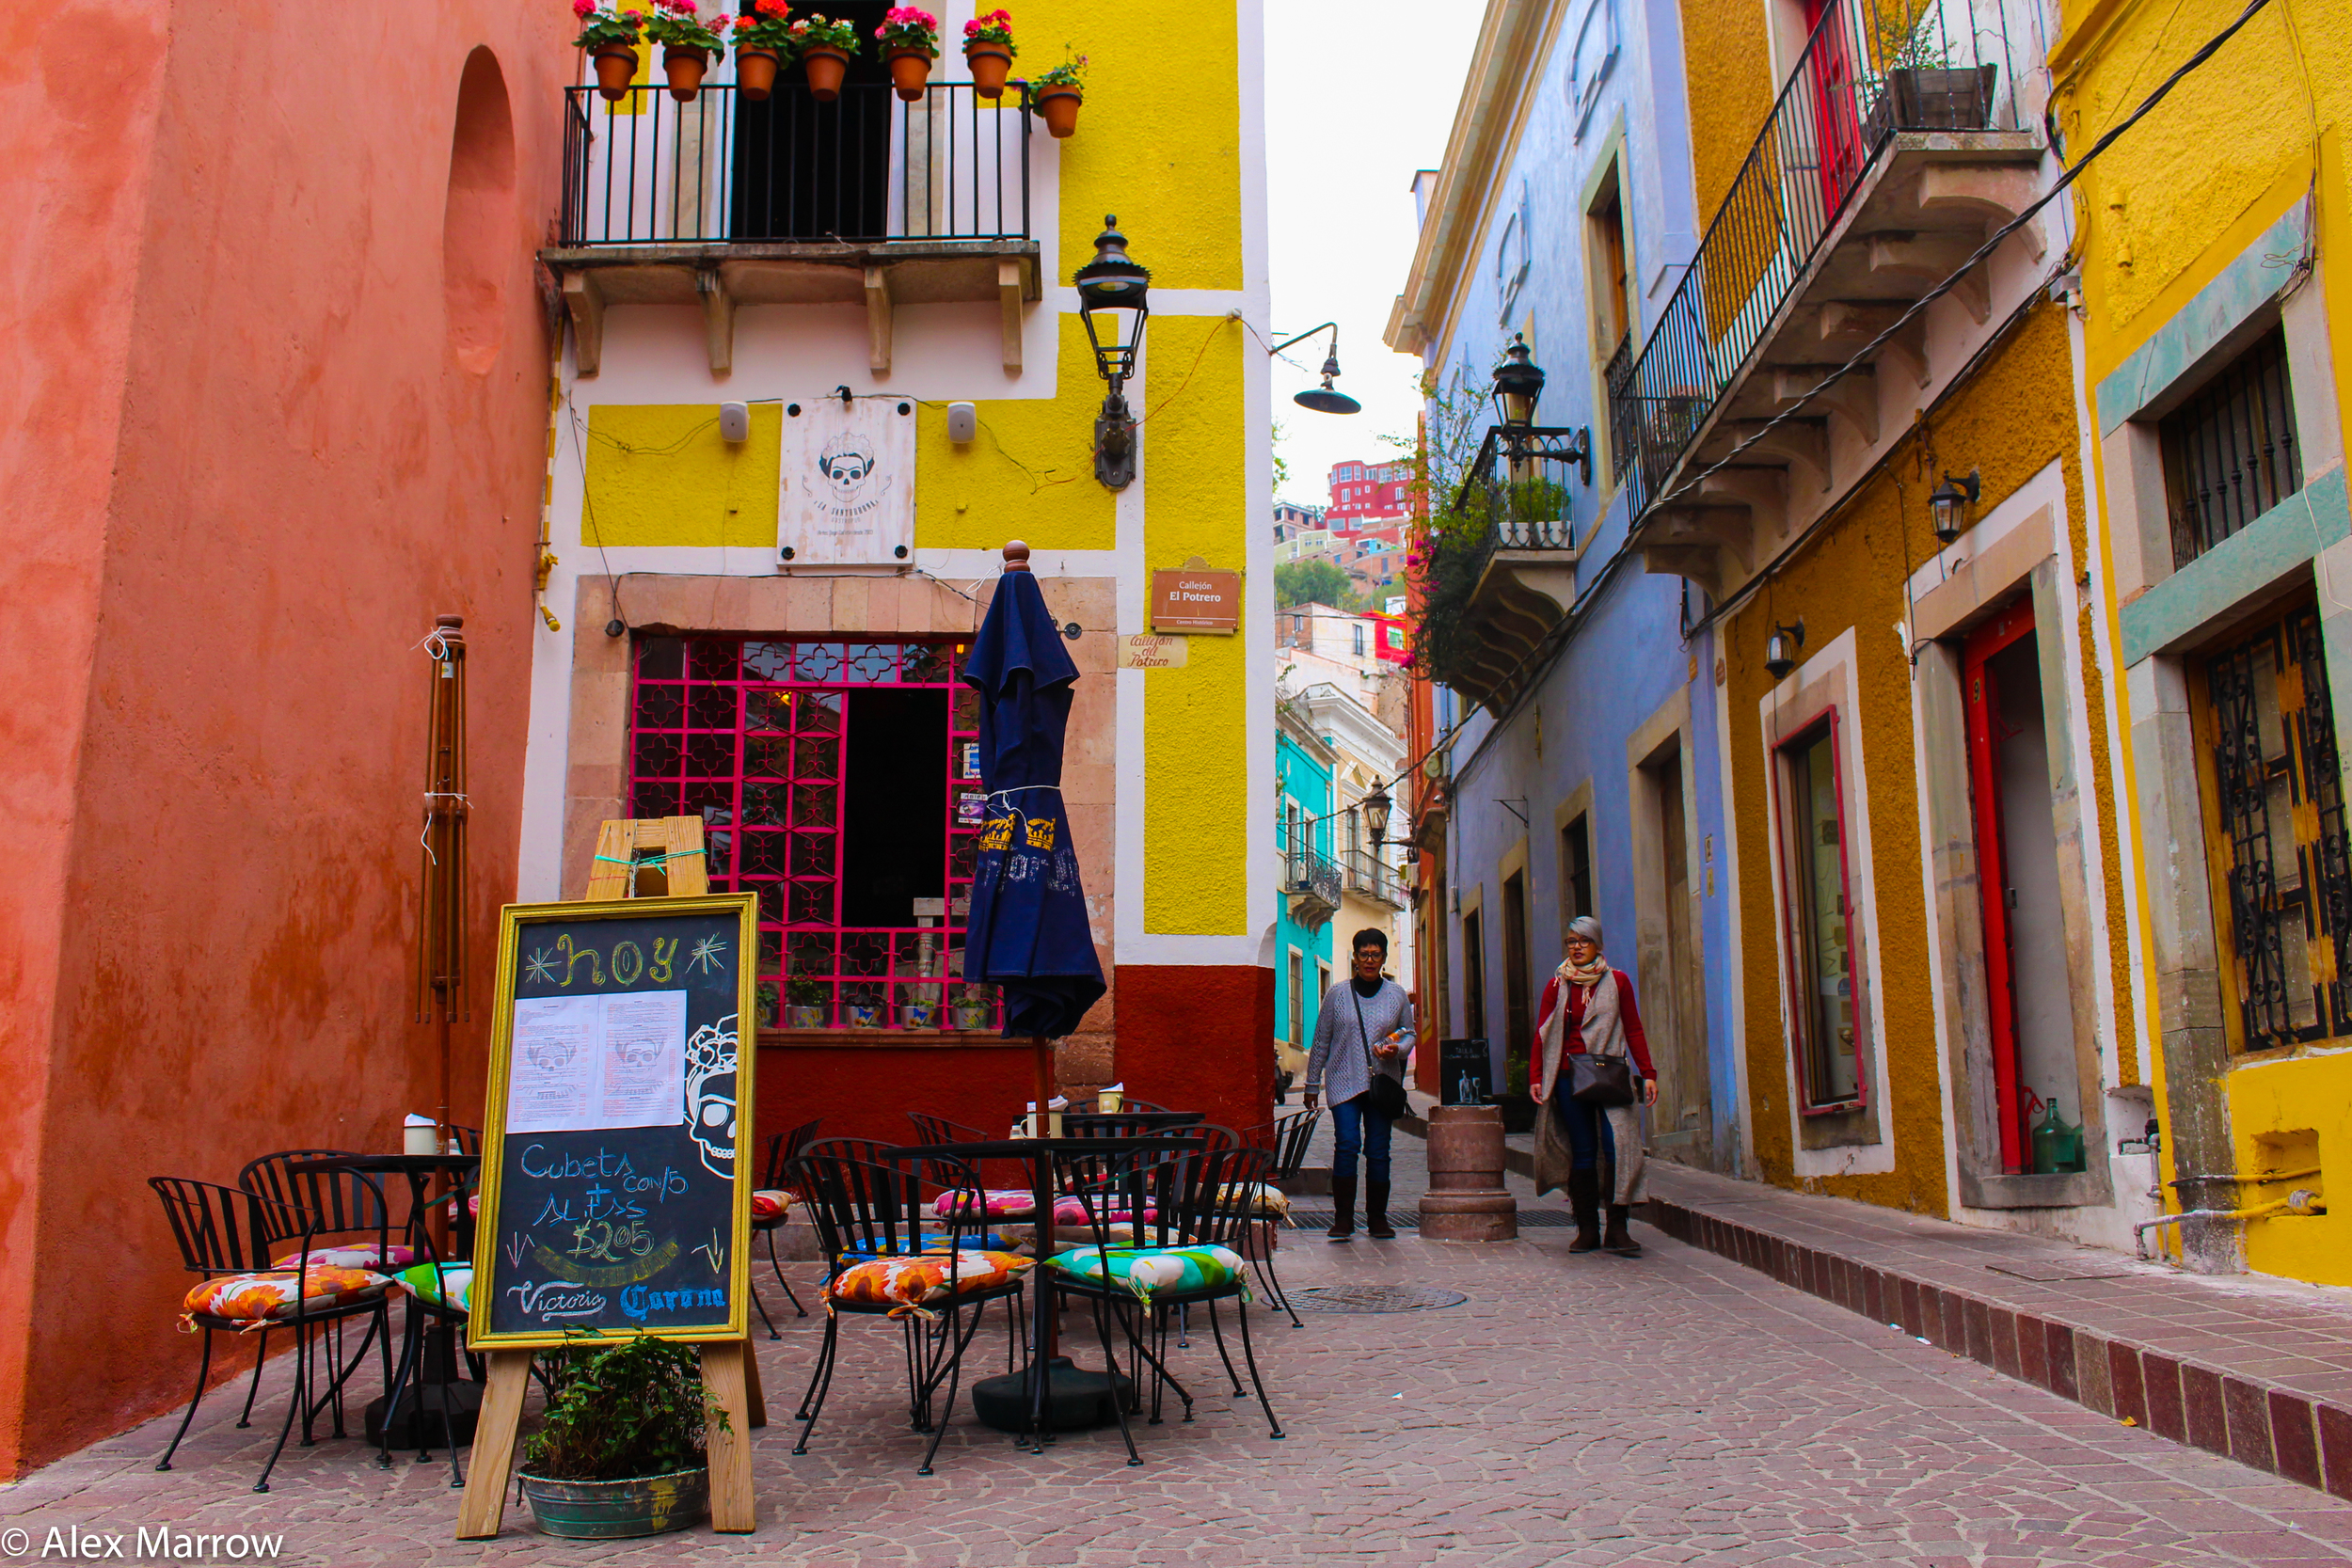 A Colourful Street in Guanajuato